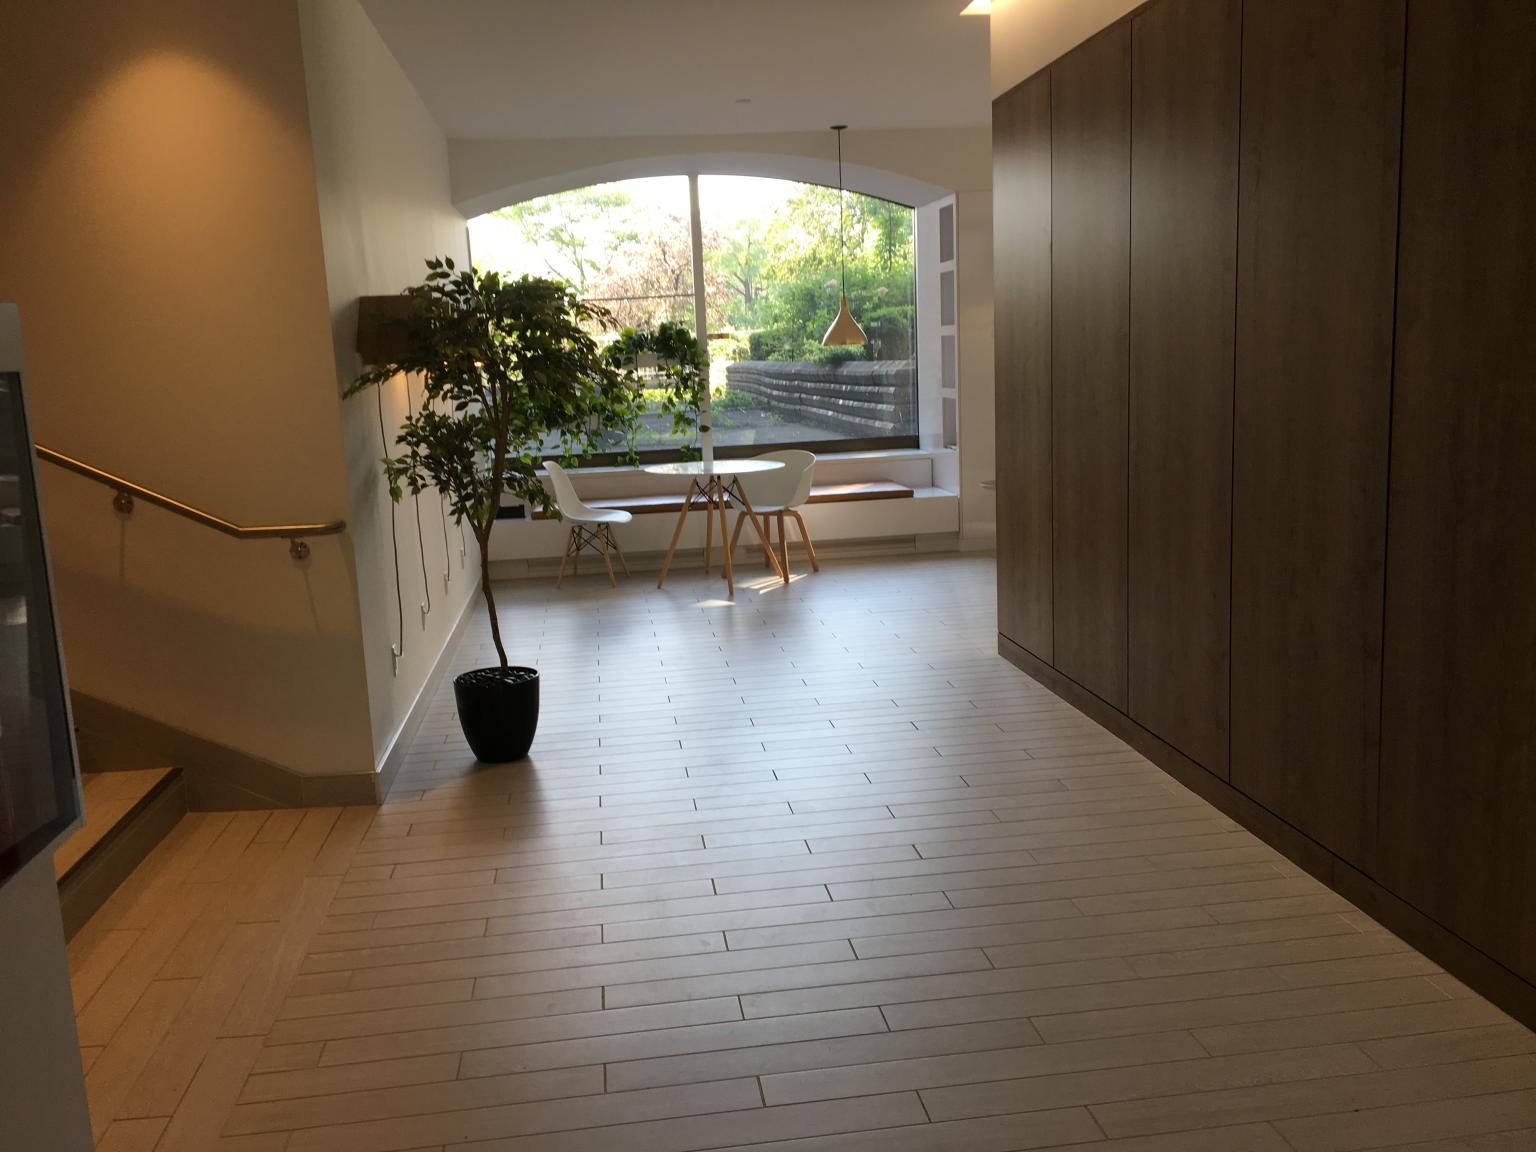 1 bedroom Apartments for rent in Cote-des-Neiges at Place Concorde - Photo 39 - RentQuebecApartments – L406445